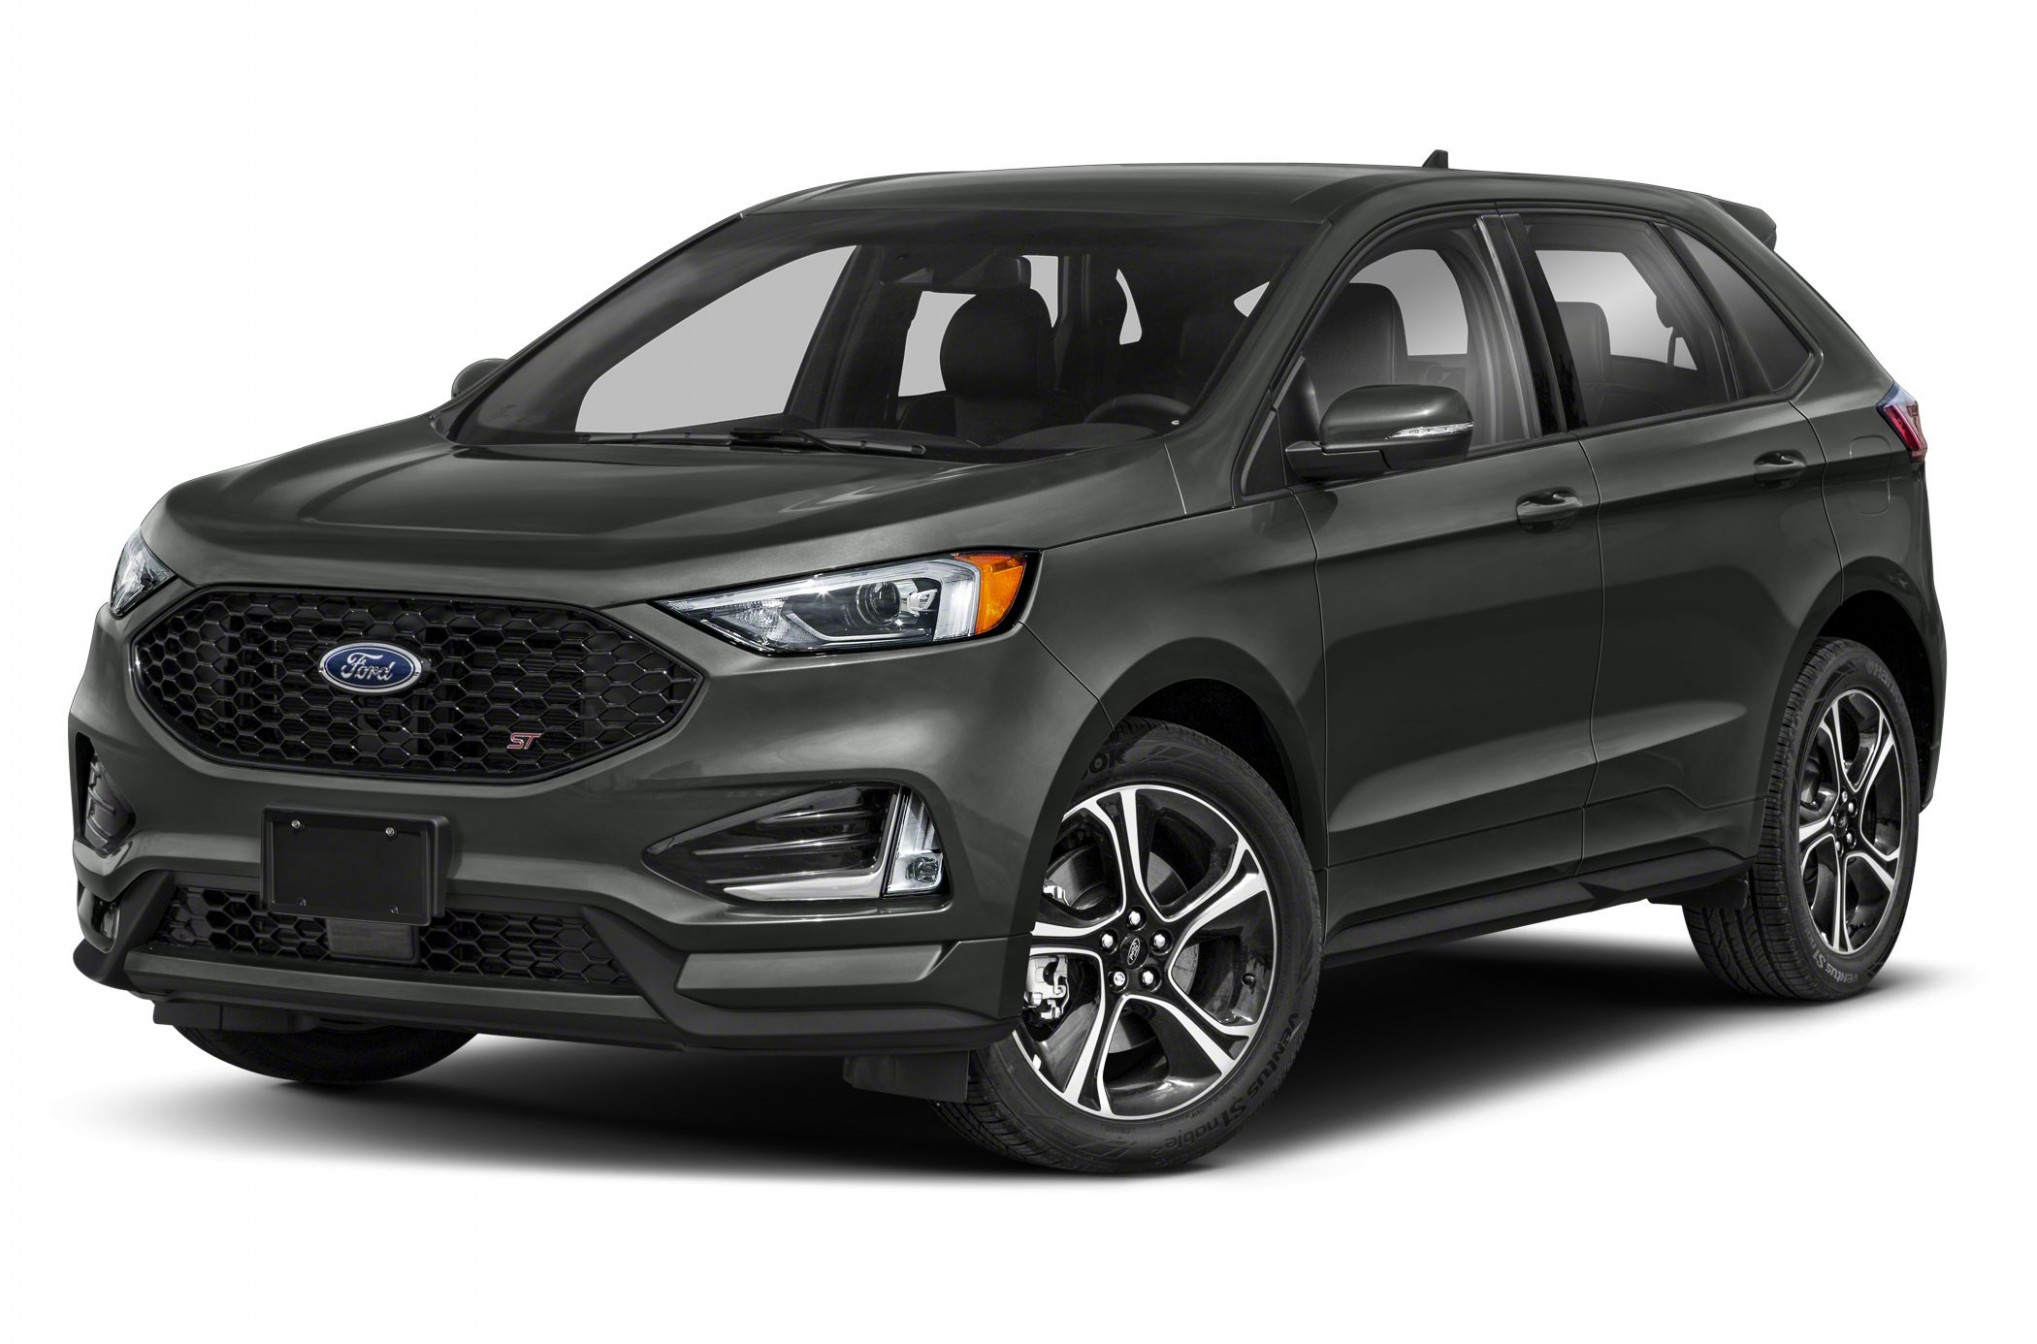 7 Ford Edge ST 7dr All-wheel Drive Pricing and Options